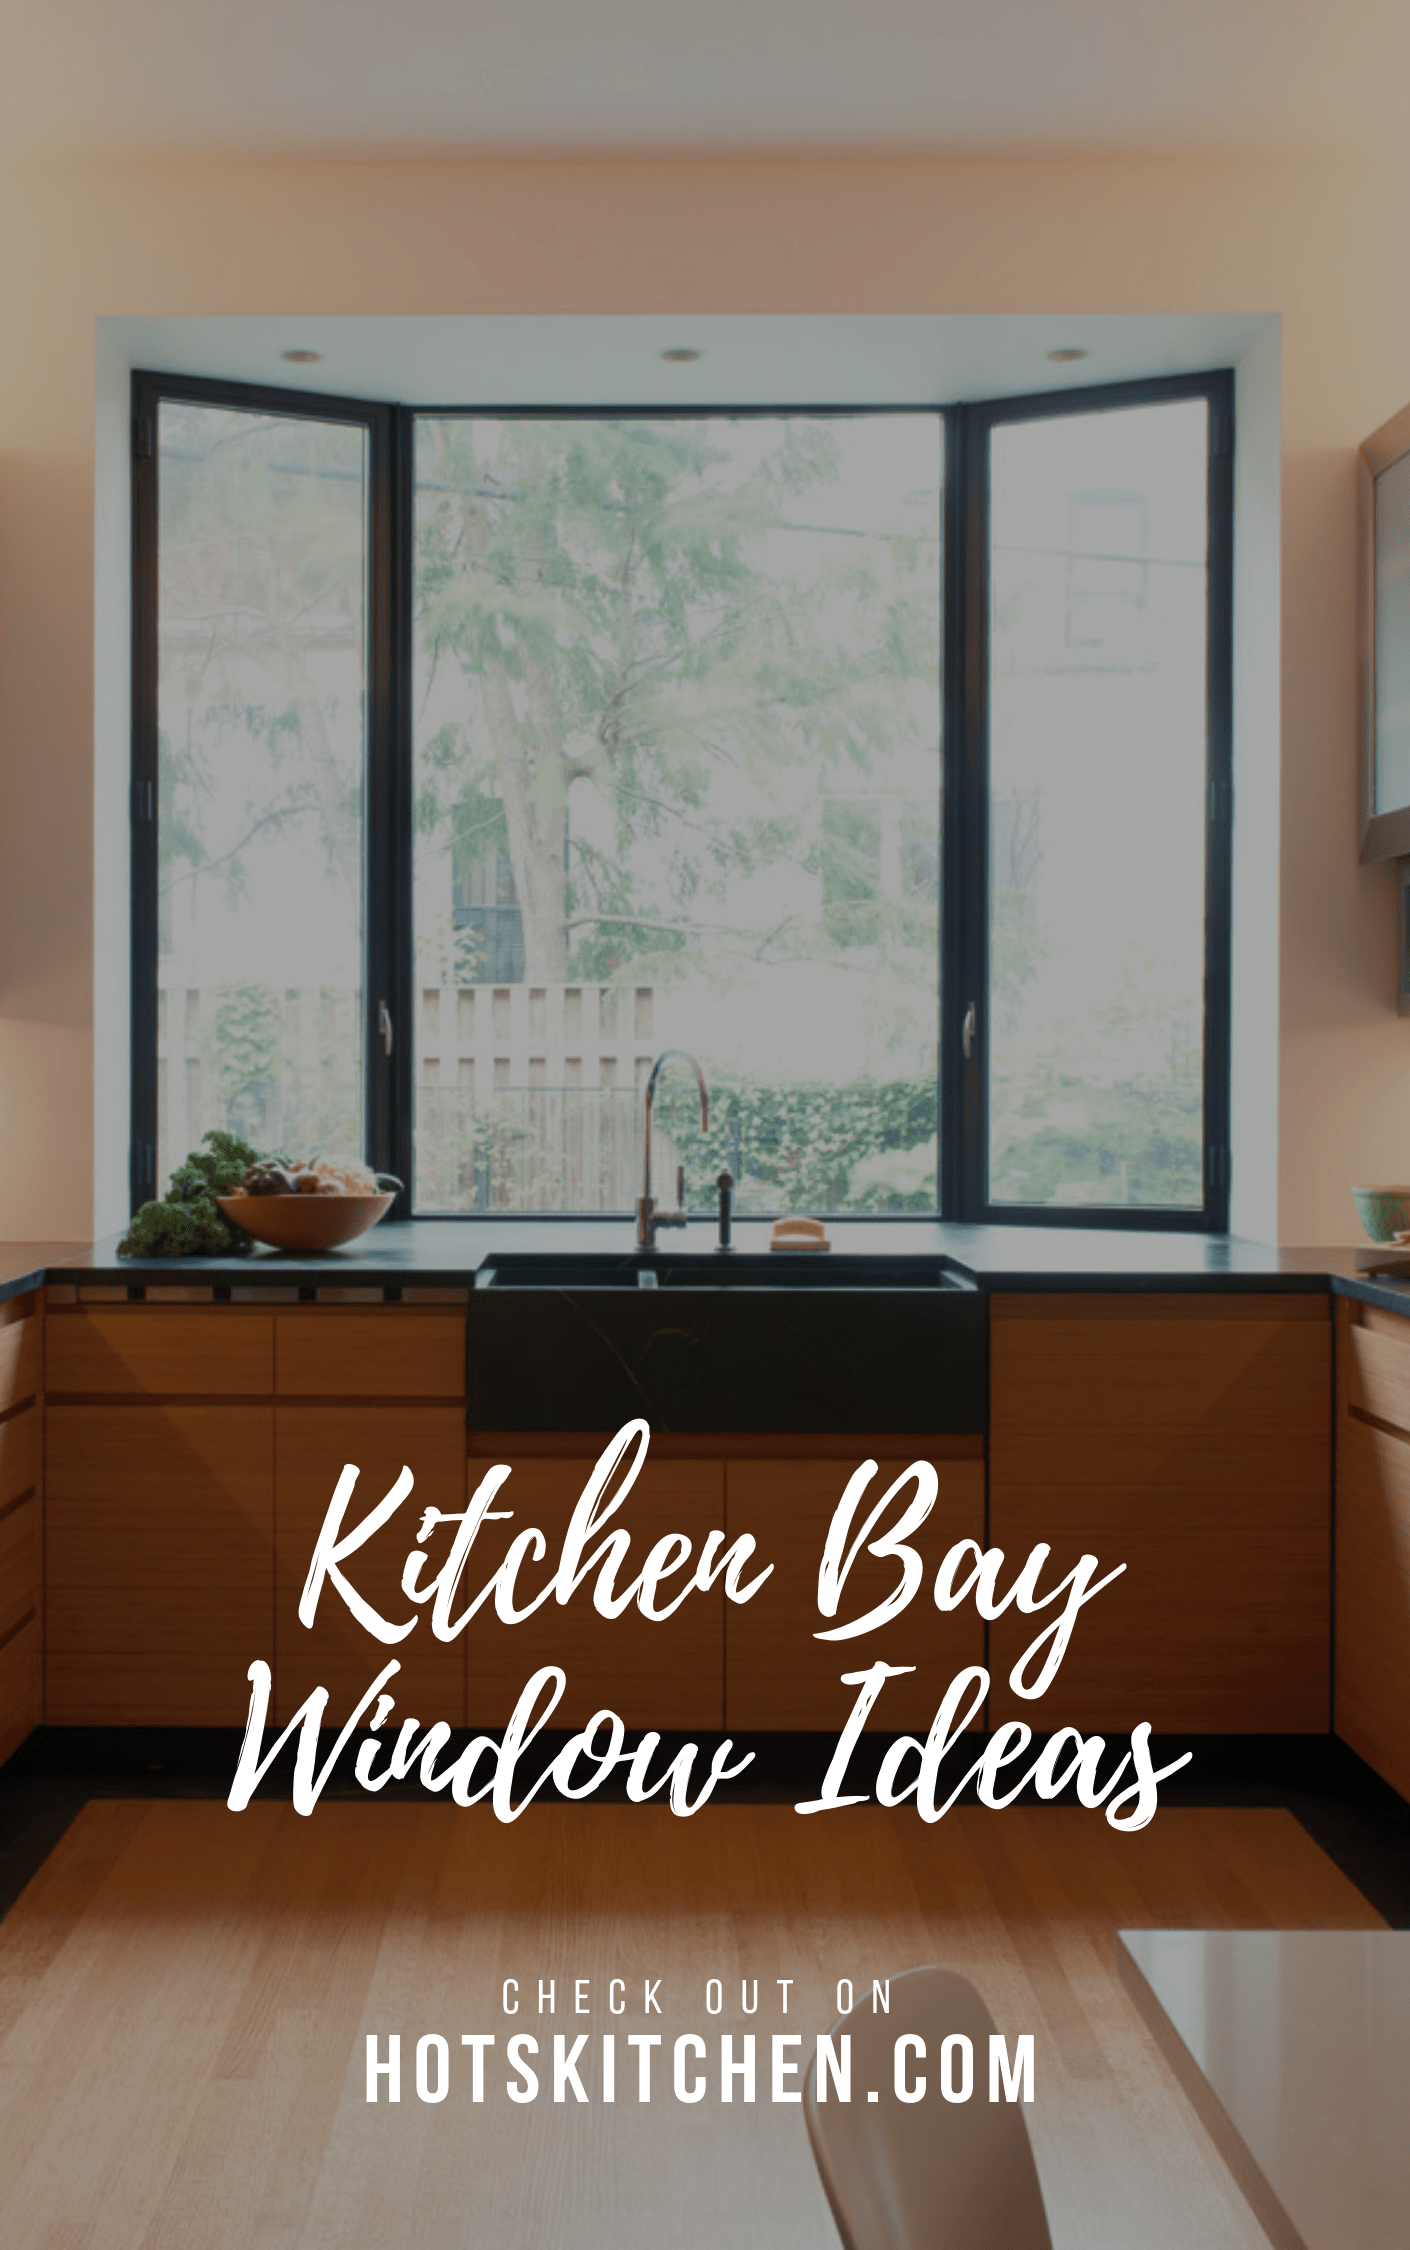 17+ kitchen bay window ideas (type of window & how to